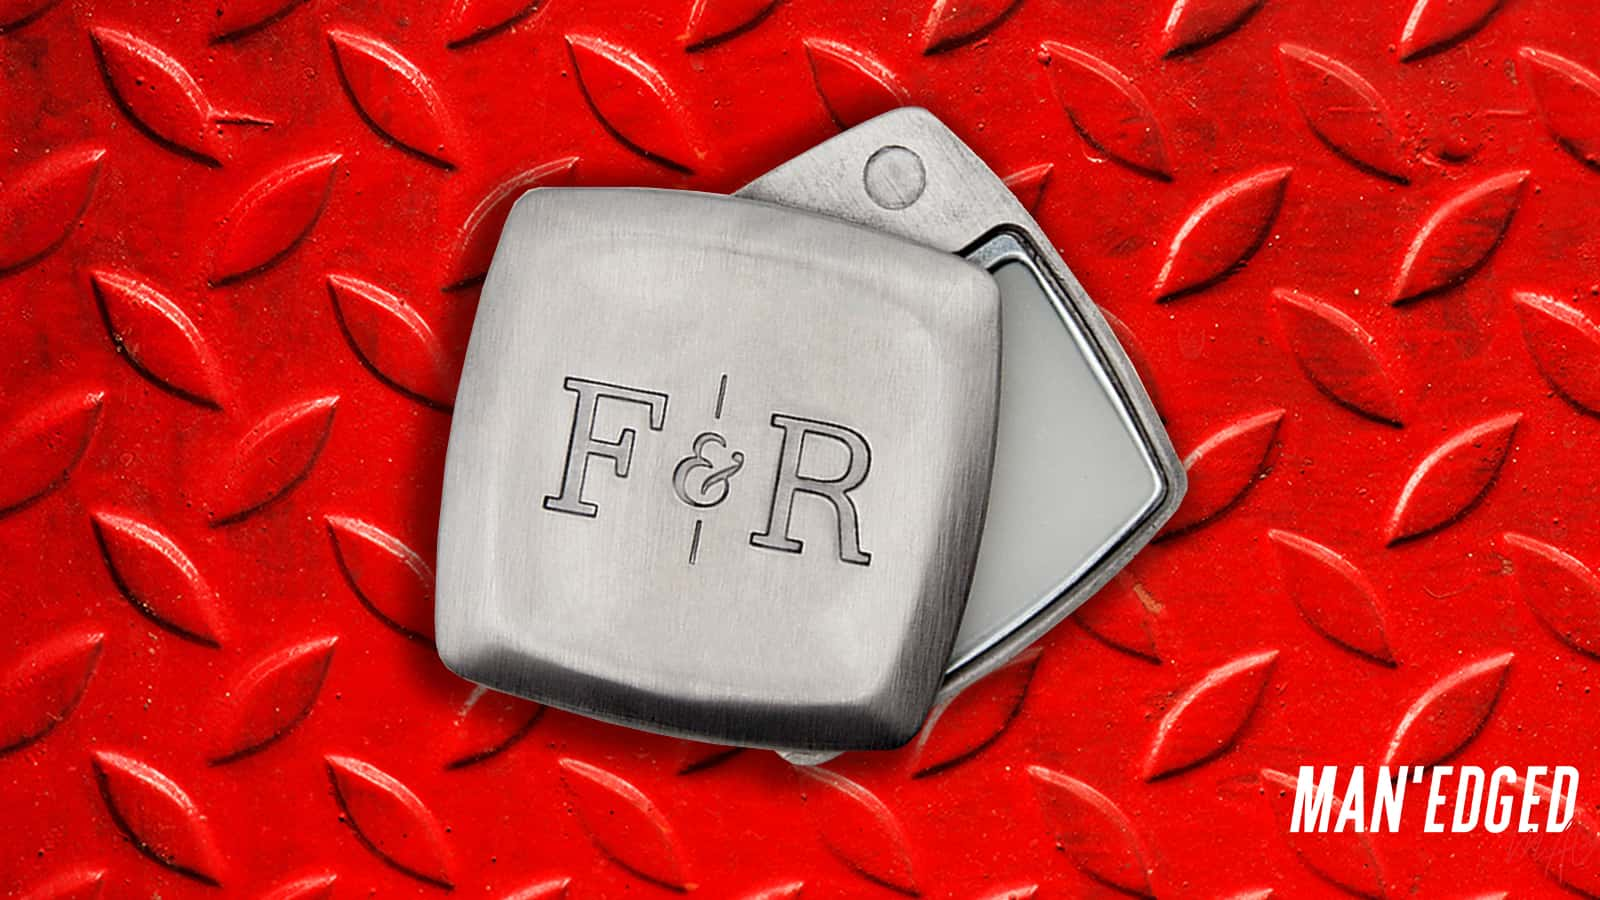 The best gifts for men - our top 19 gifting ideas that guys will love - Fulton & Roar solid mens cologne